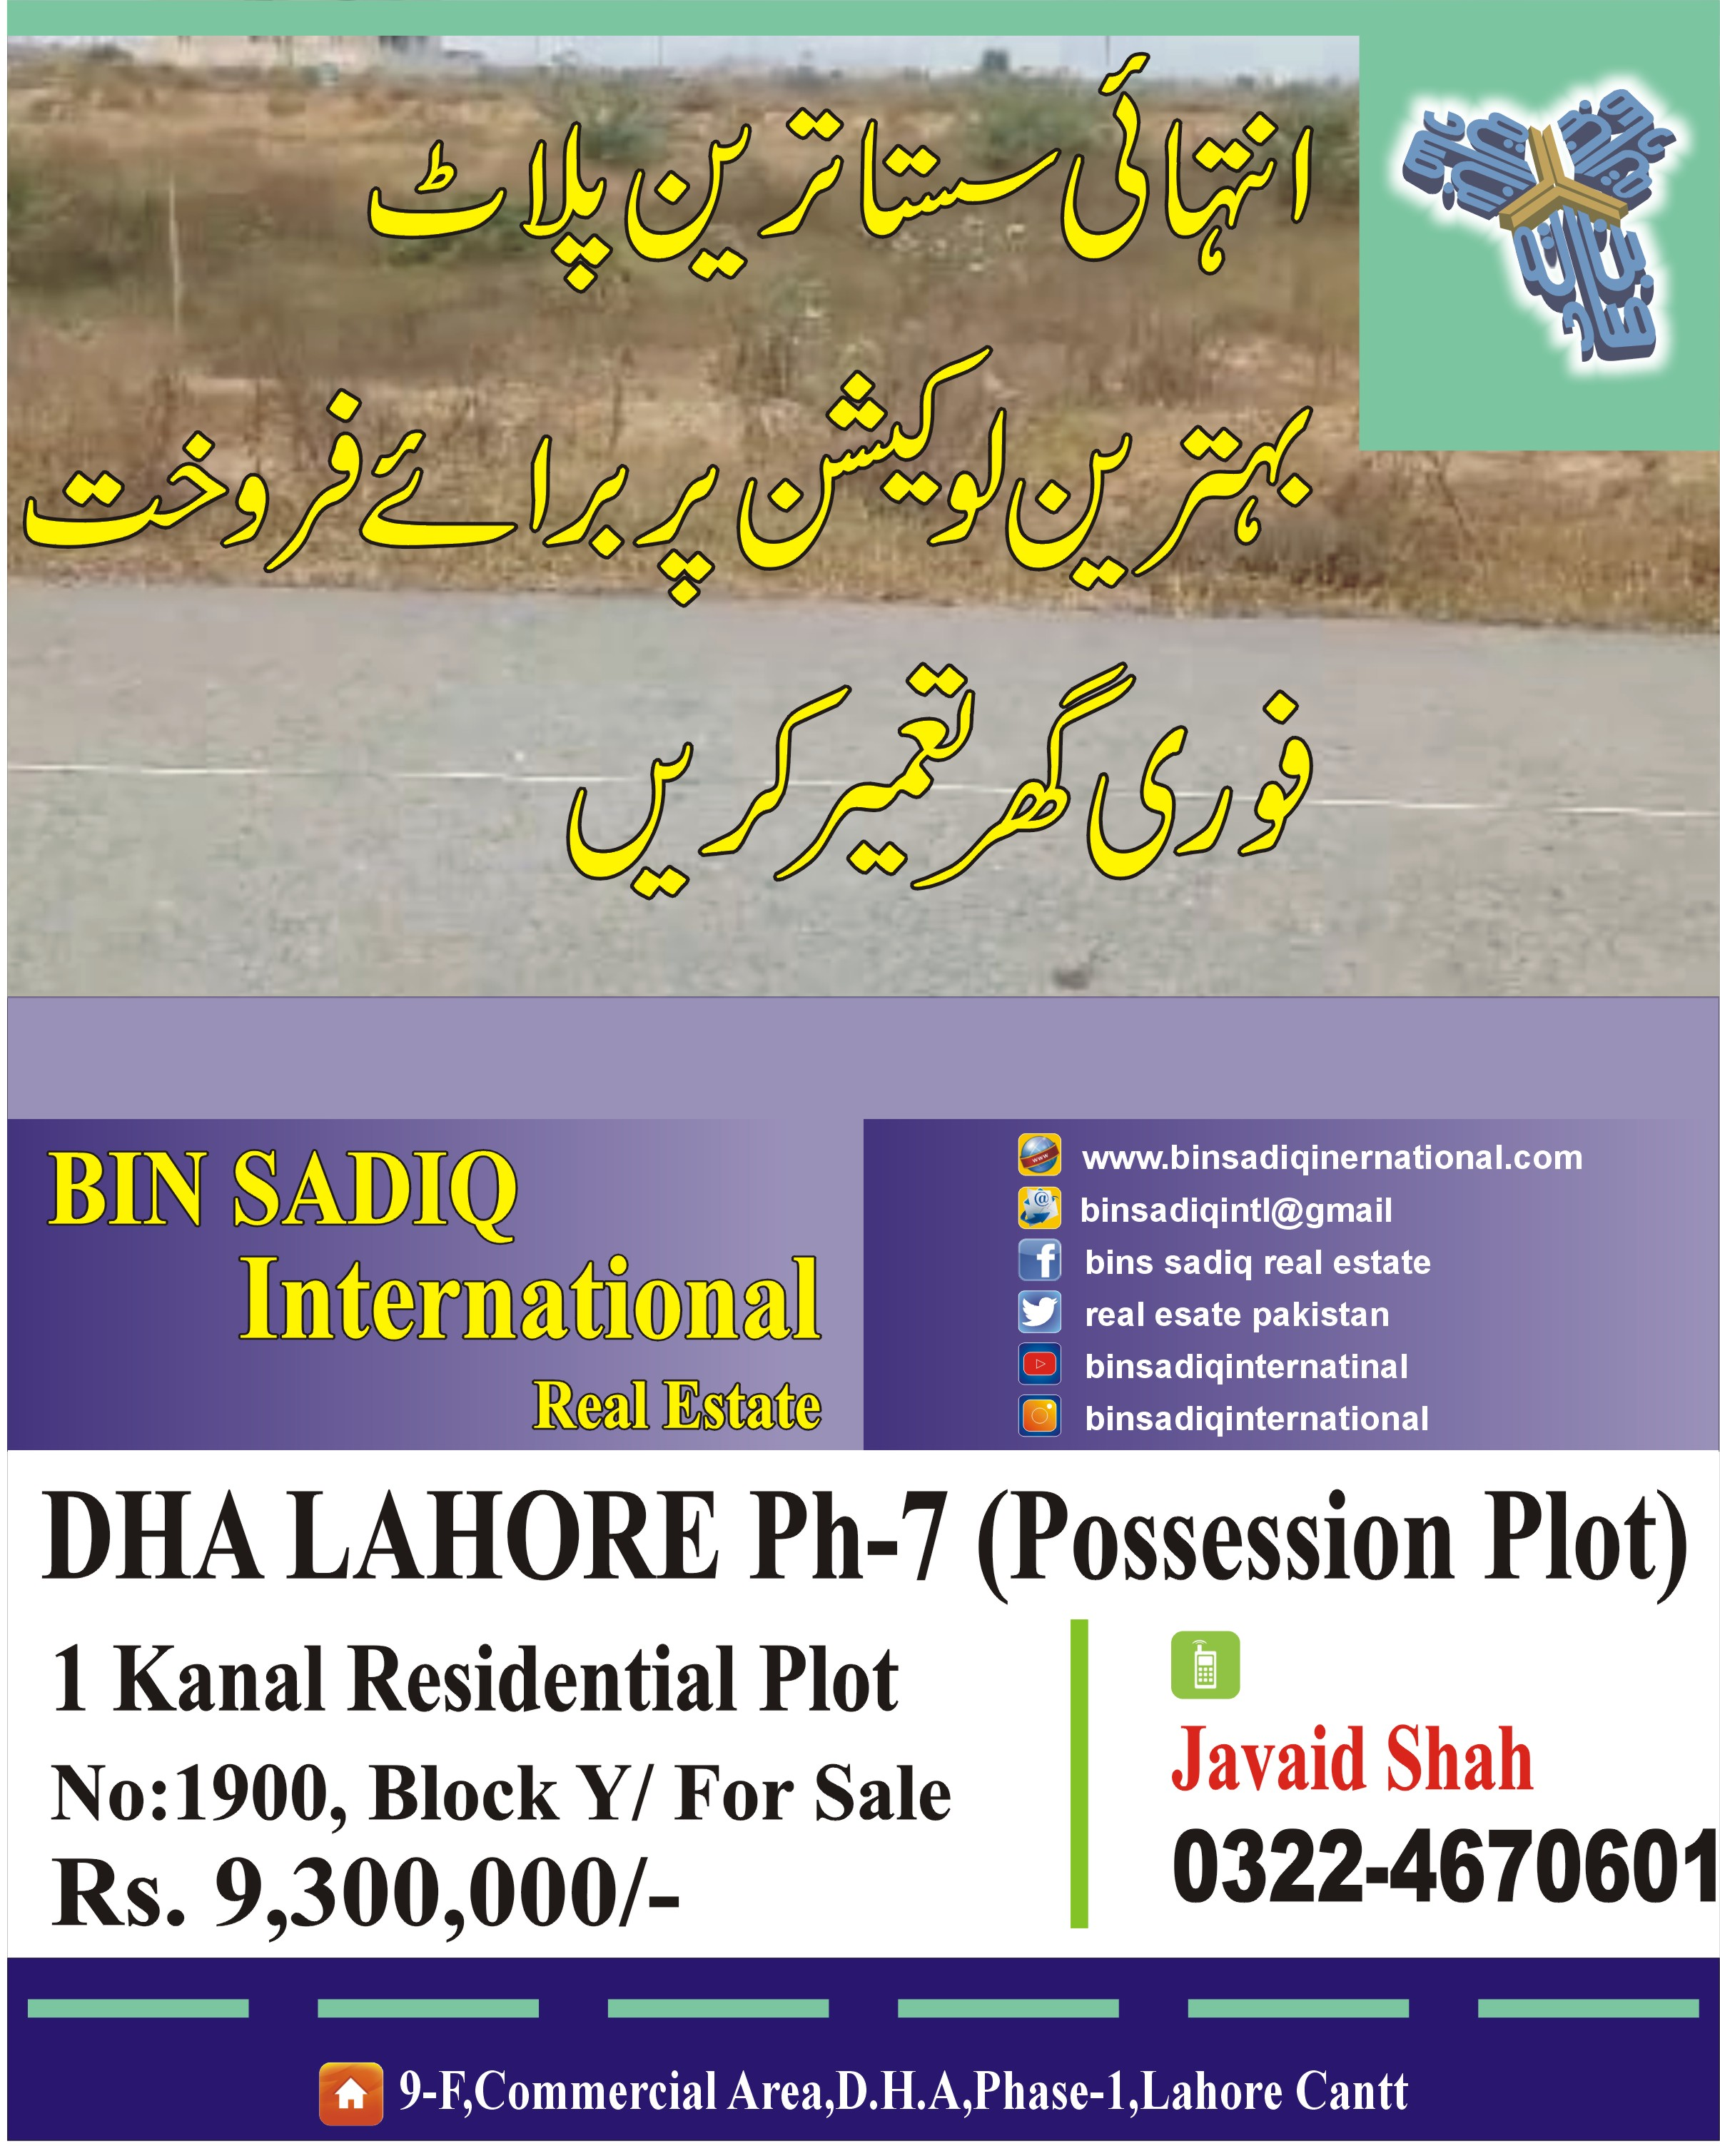 DHA LAHORE PHASE 7 BLOCK Y, PLOT NO 1900 FOR SALE